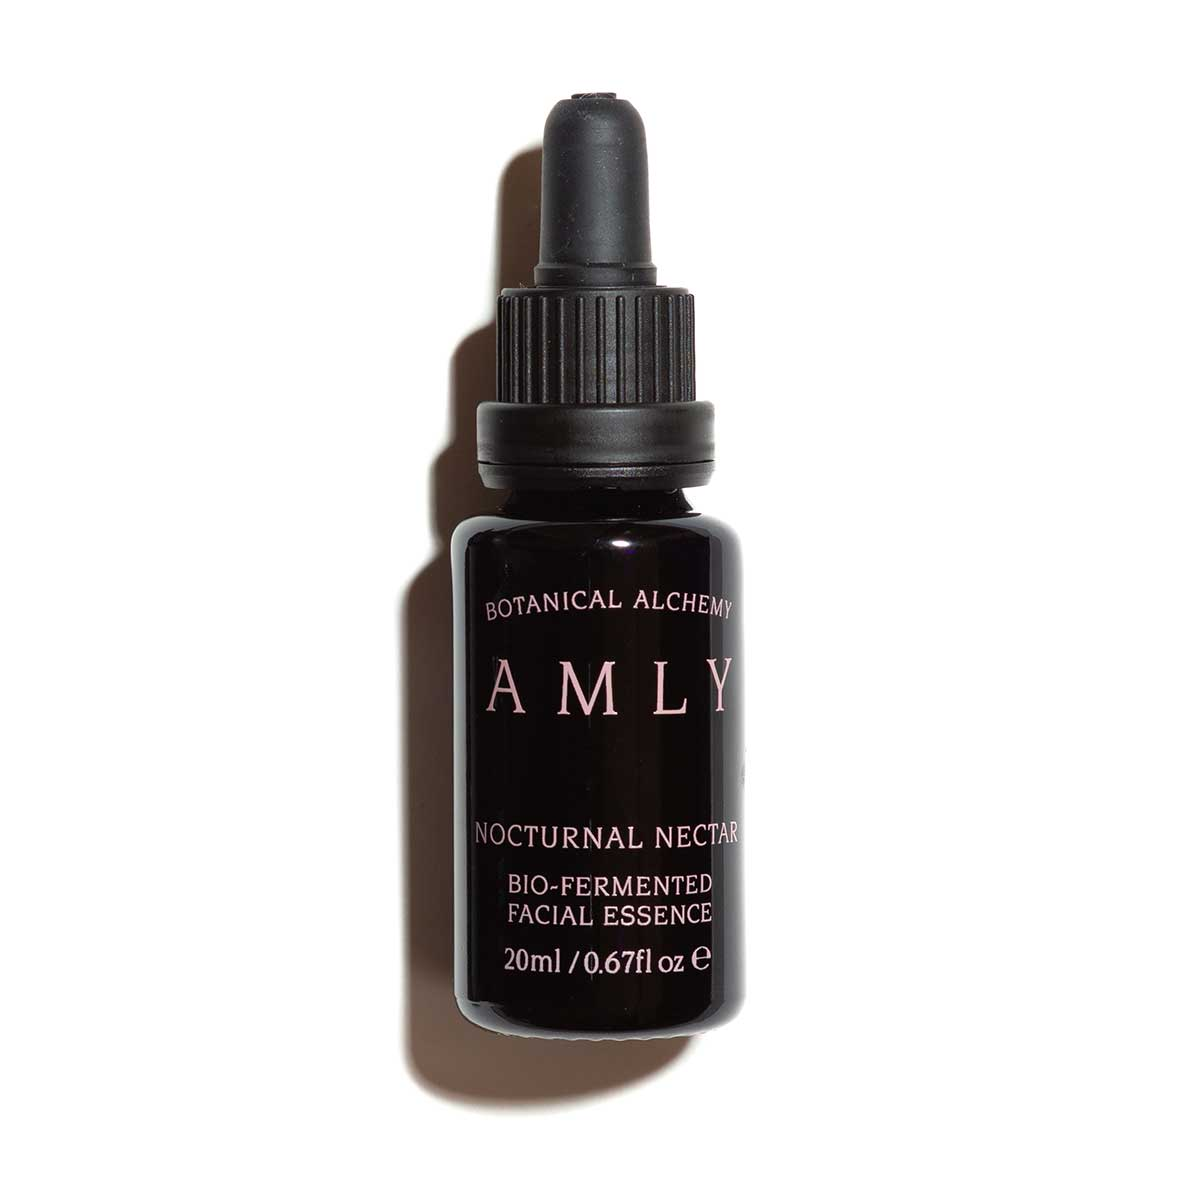 AMLY Skincare 20ml-nocturnal-nectar facial essence with lid and white background